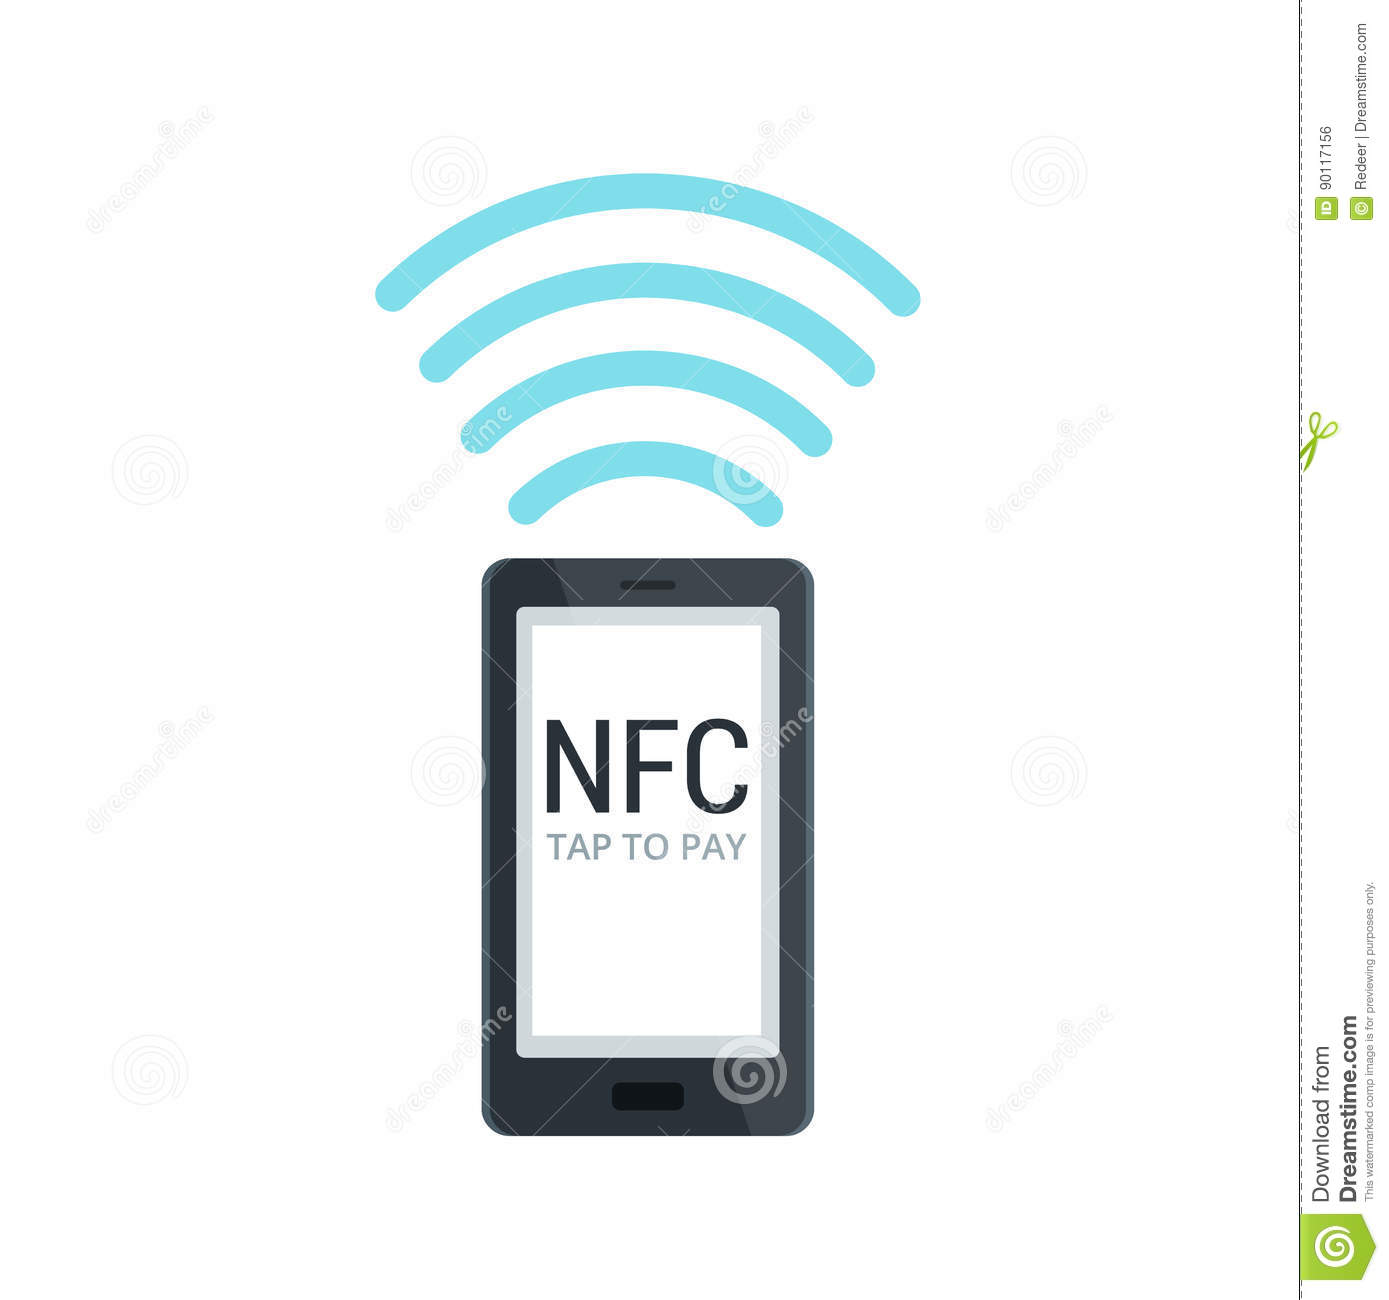 Mobile payment using nfc tap and